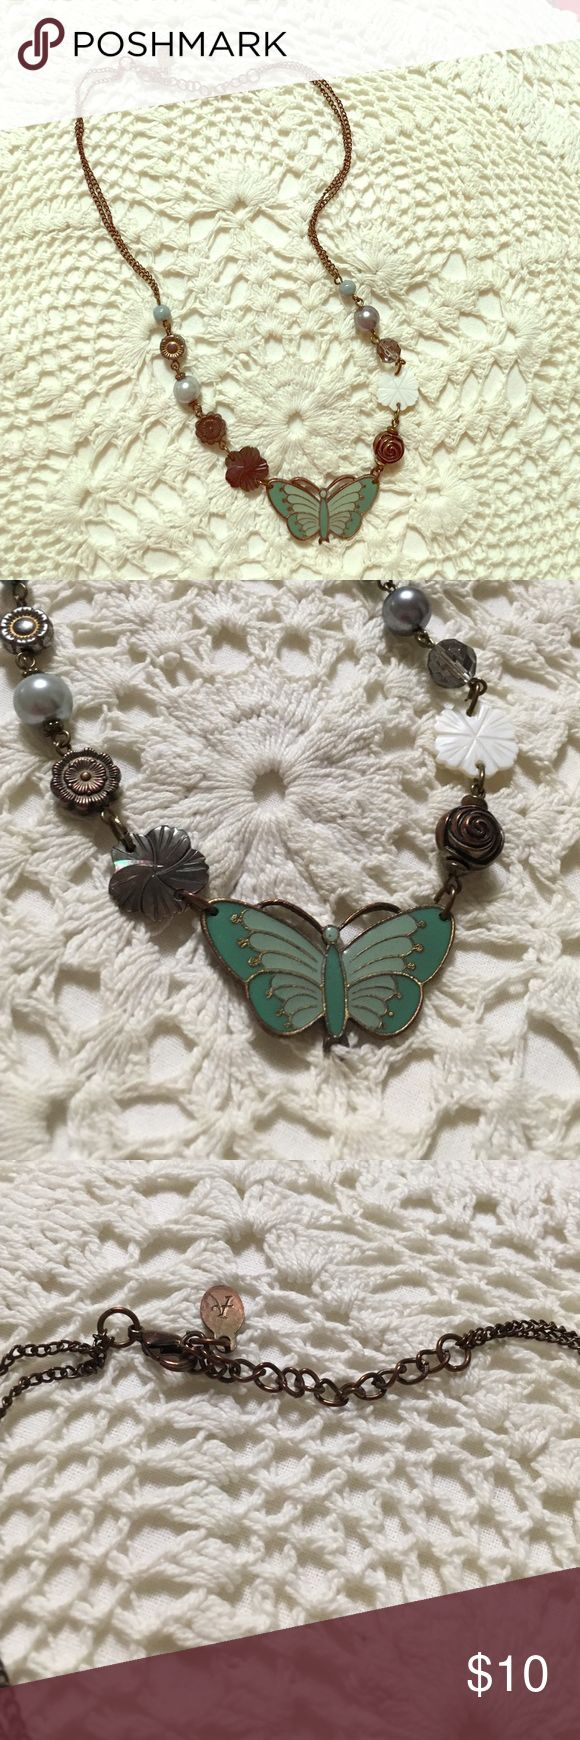 Necklace Beautiful romantic necklace to wear spring- summer and fall! Accessories Jewelry Necklaces